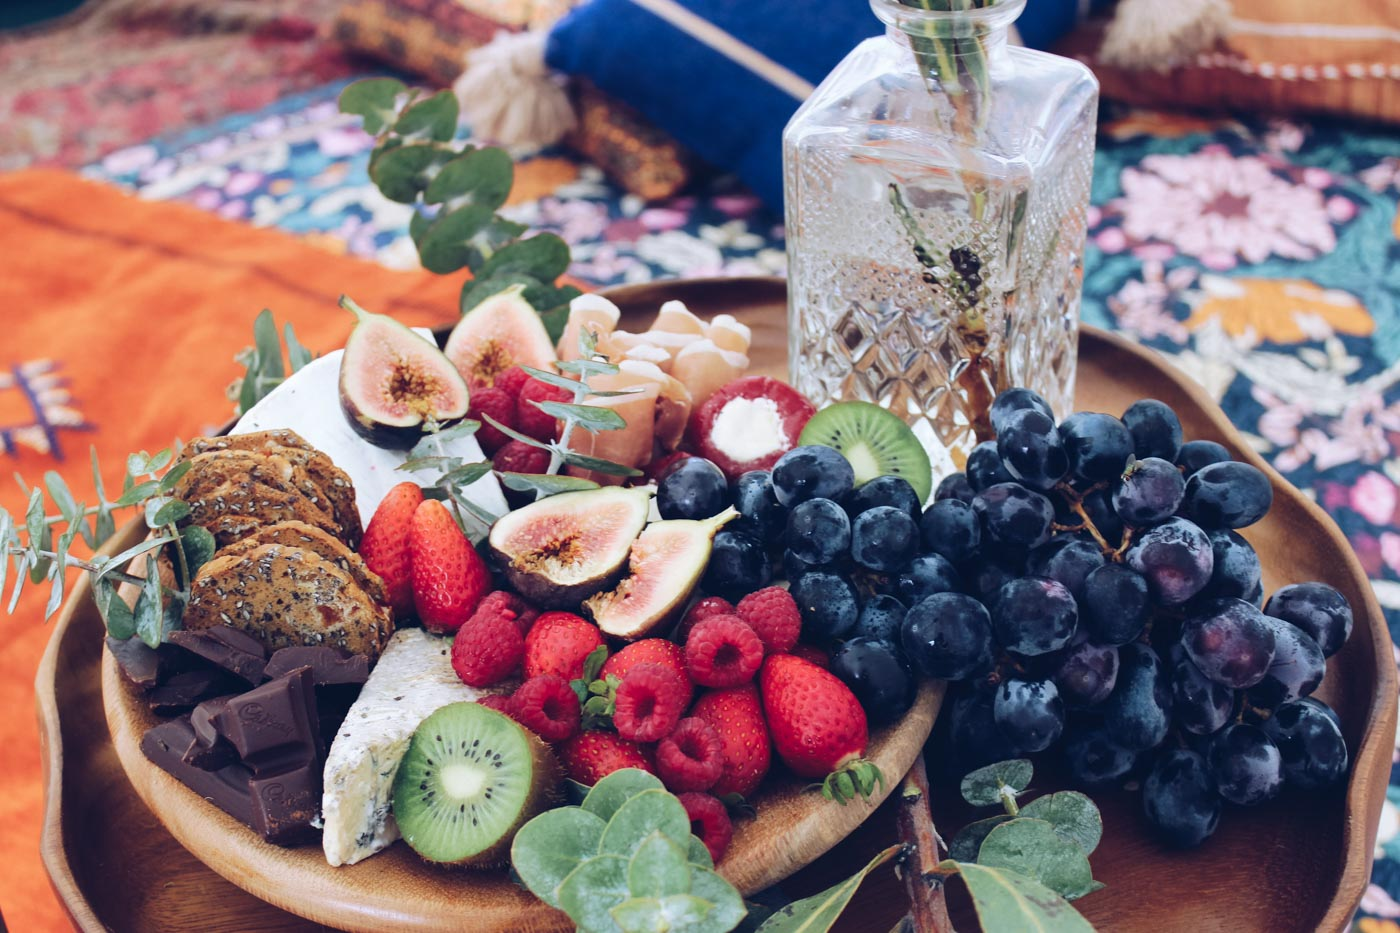 the_Collection_co_grazing_table_cairns_weddings_catering_grazing_platter_hire_pop_up_picnic_bell_tent_event_hire_styling-6-2.jpg